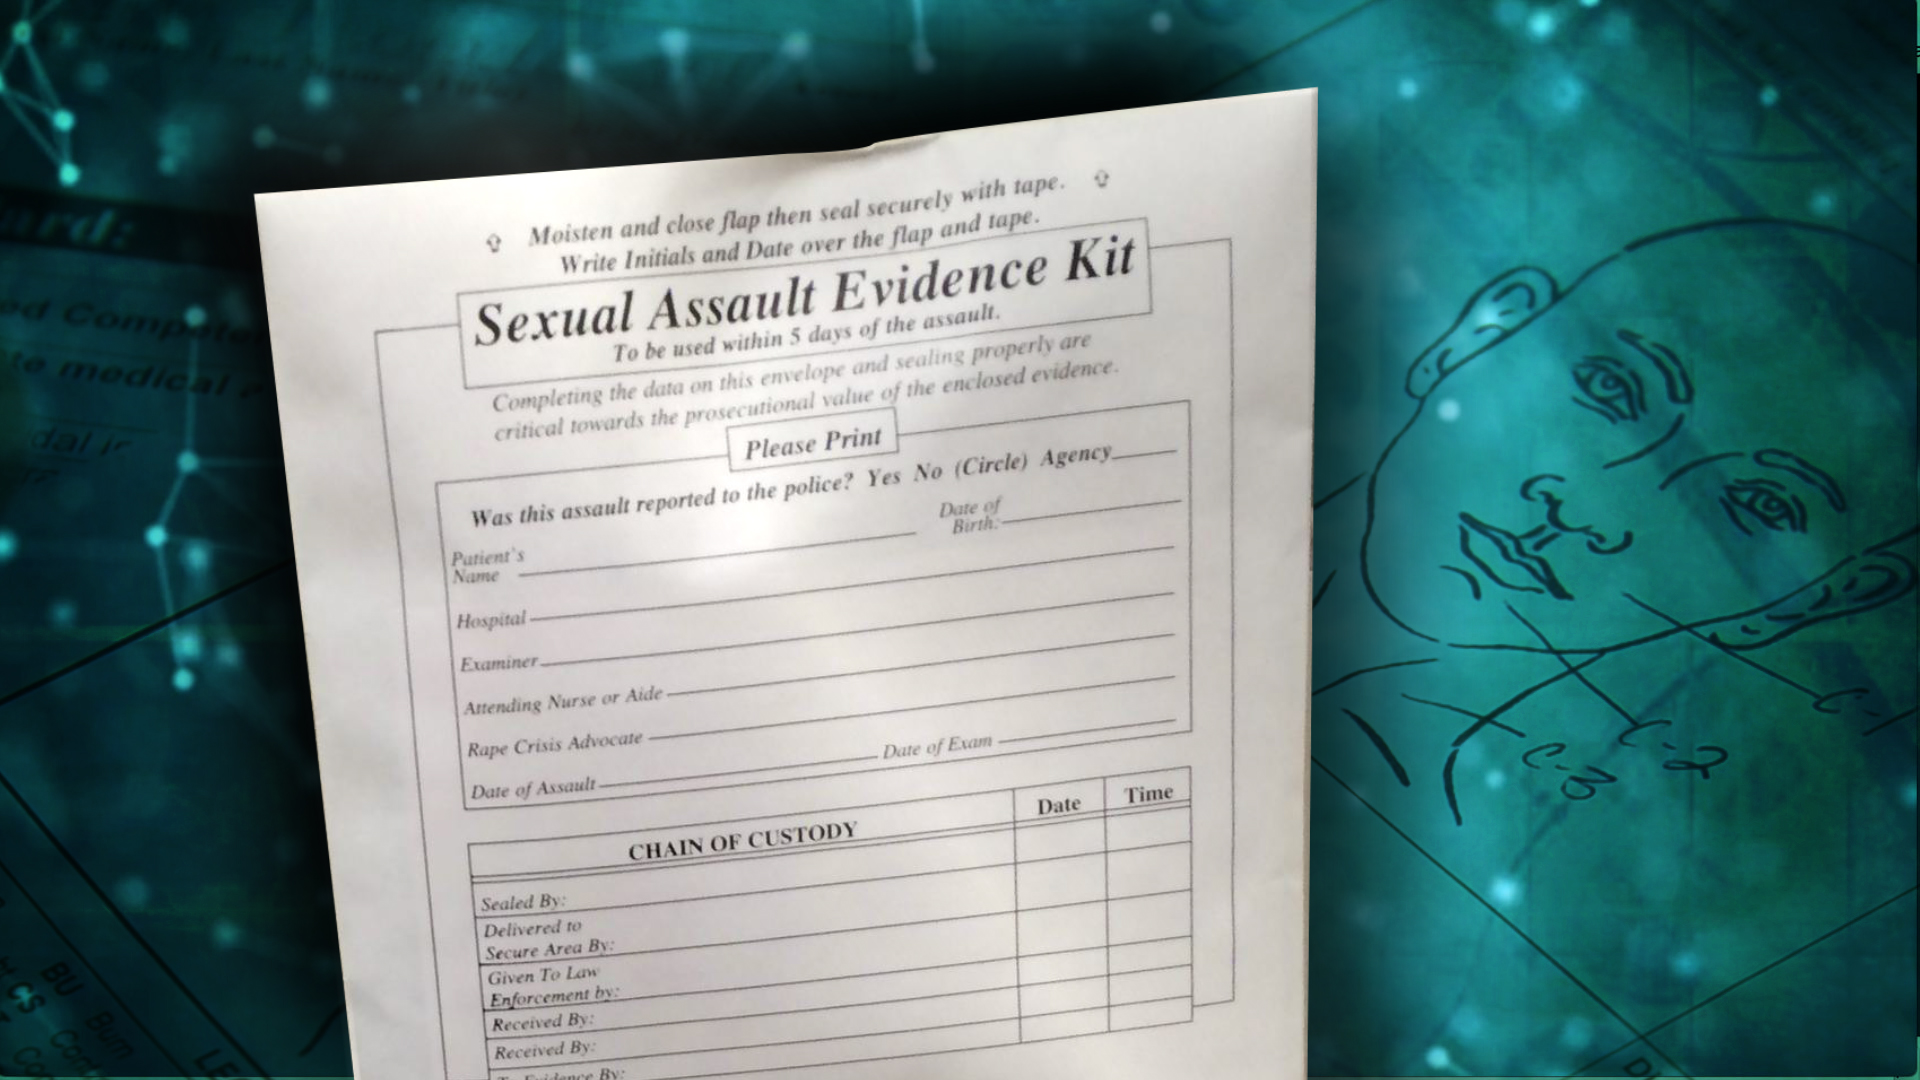 Sexual Assault Kit